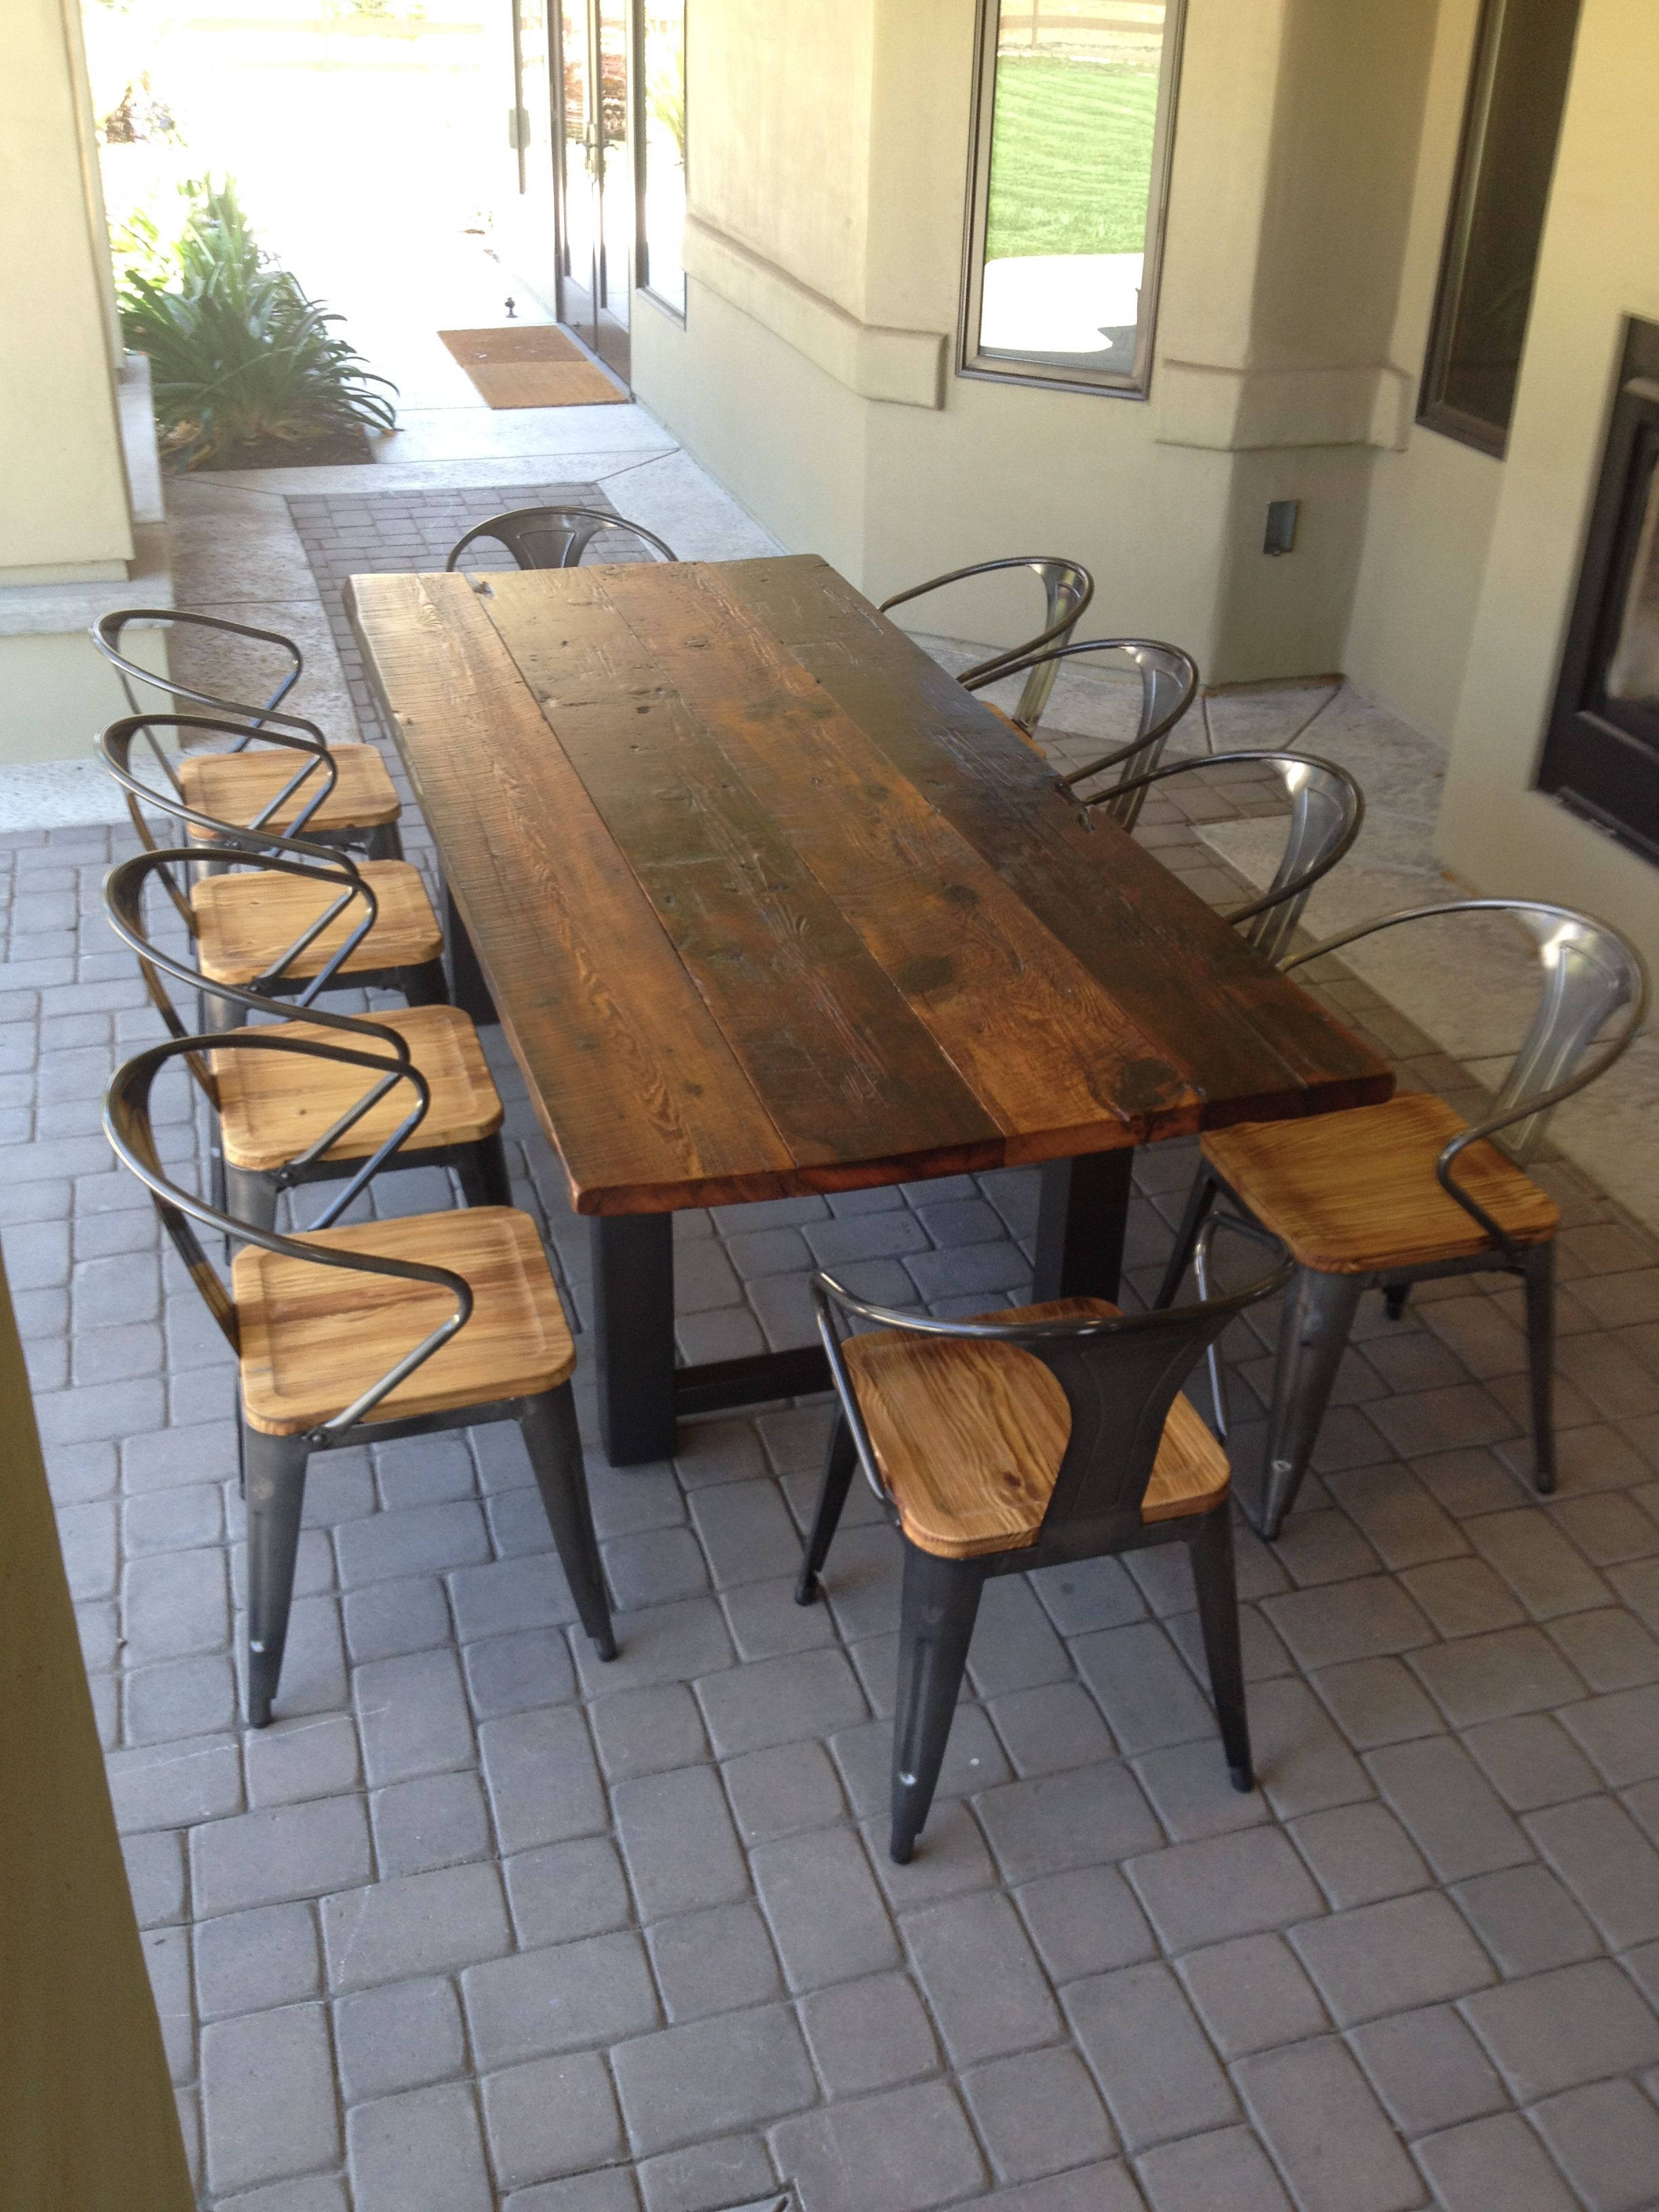 Dining table sets wood and metal dining tables wood and metal dining - Reclaimed Wood And Steel Outdoor Dining Table 1